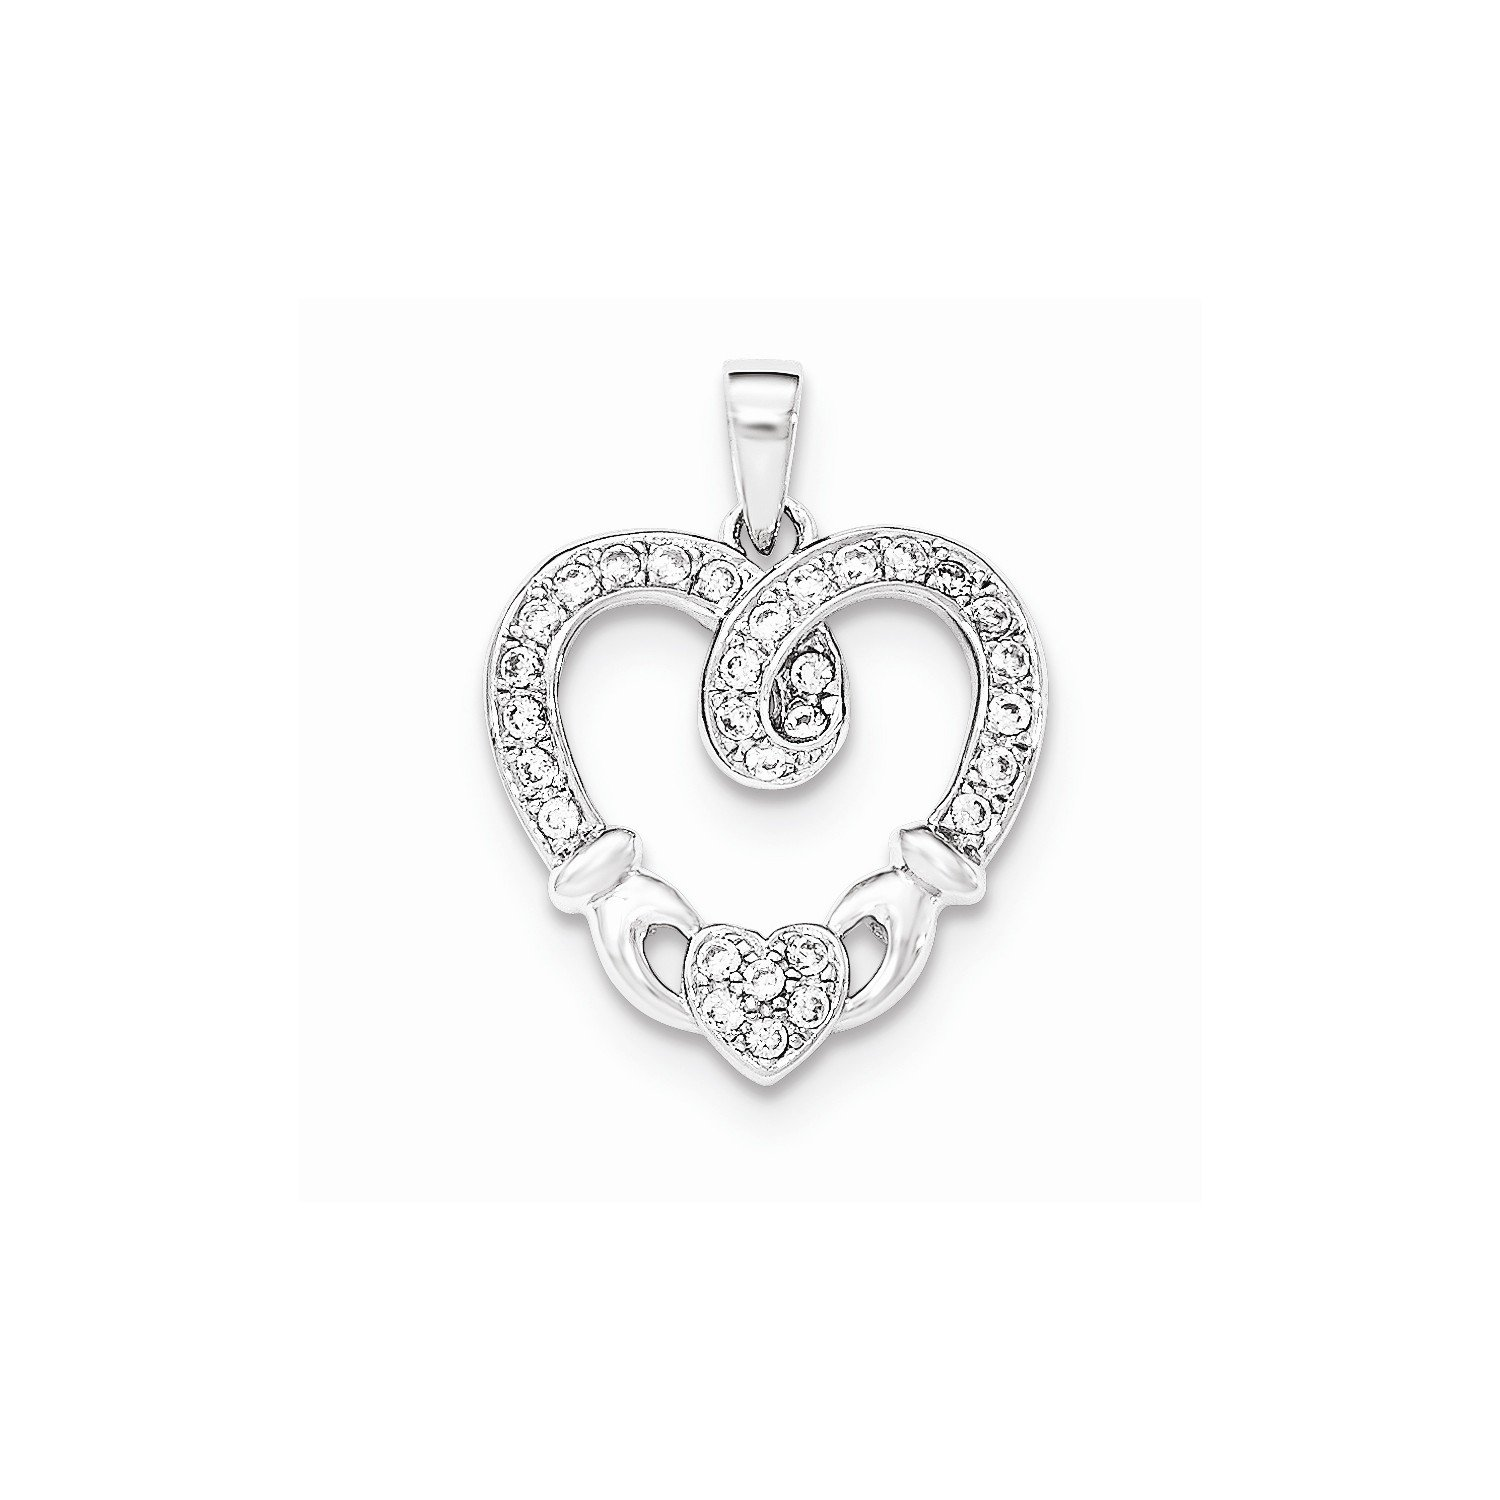 West Coast Jewelry Sterling Silver CZ Heart Claddagh Pendant